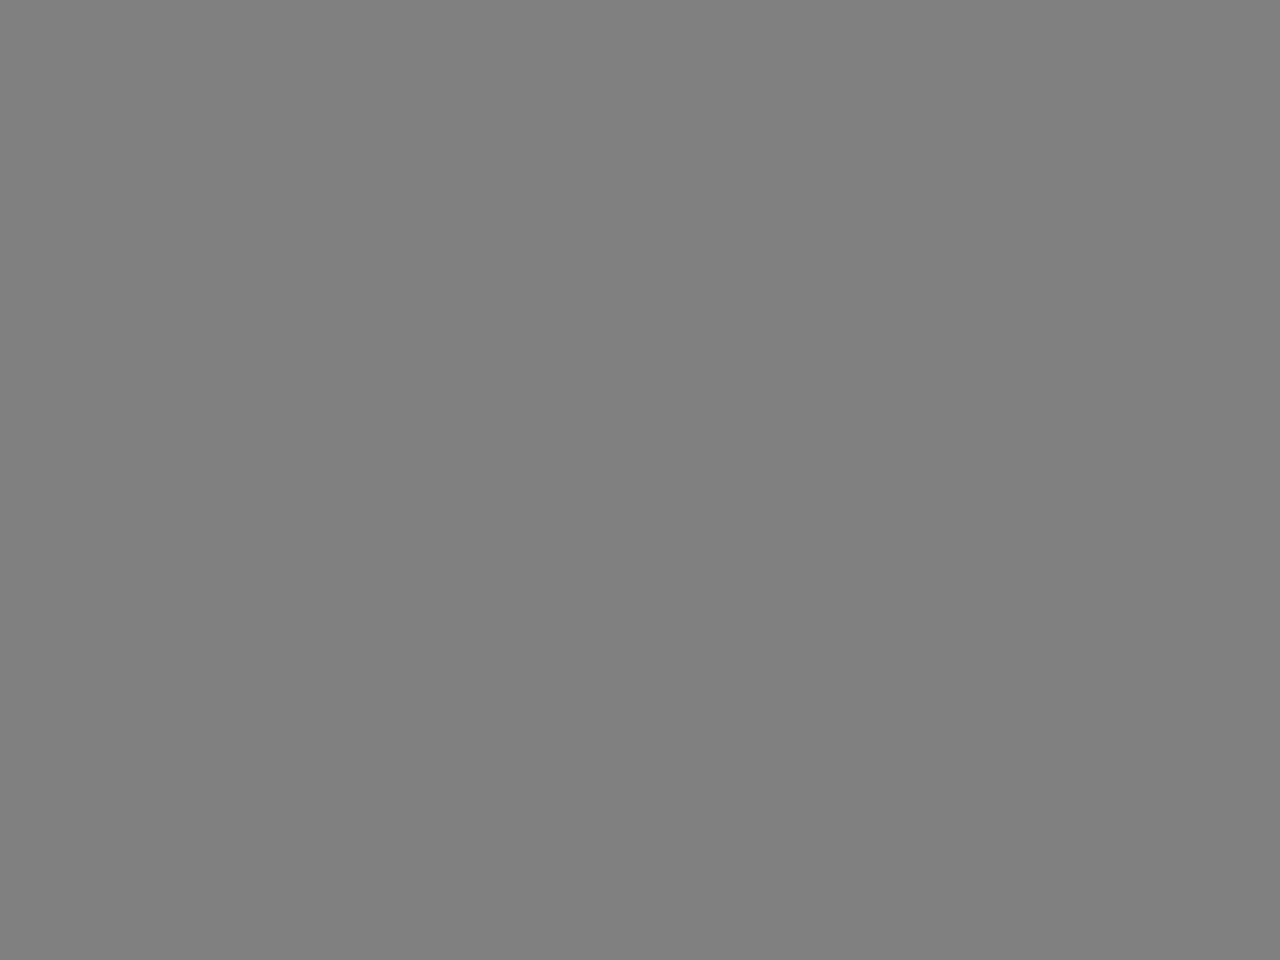 1280x960 Gray Web Gray Solid Color Background